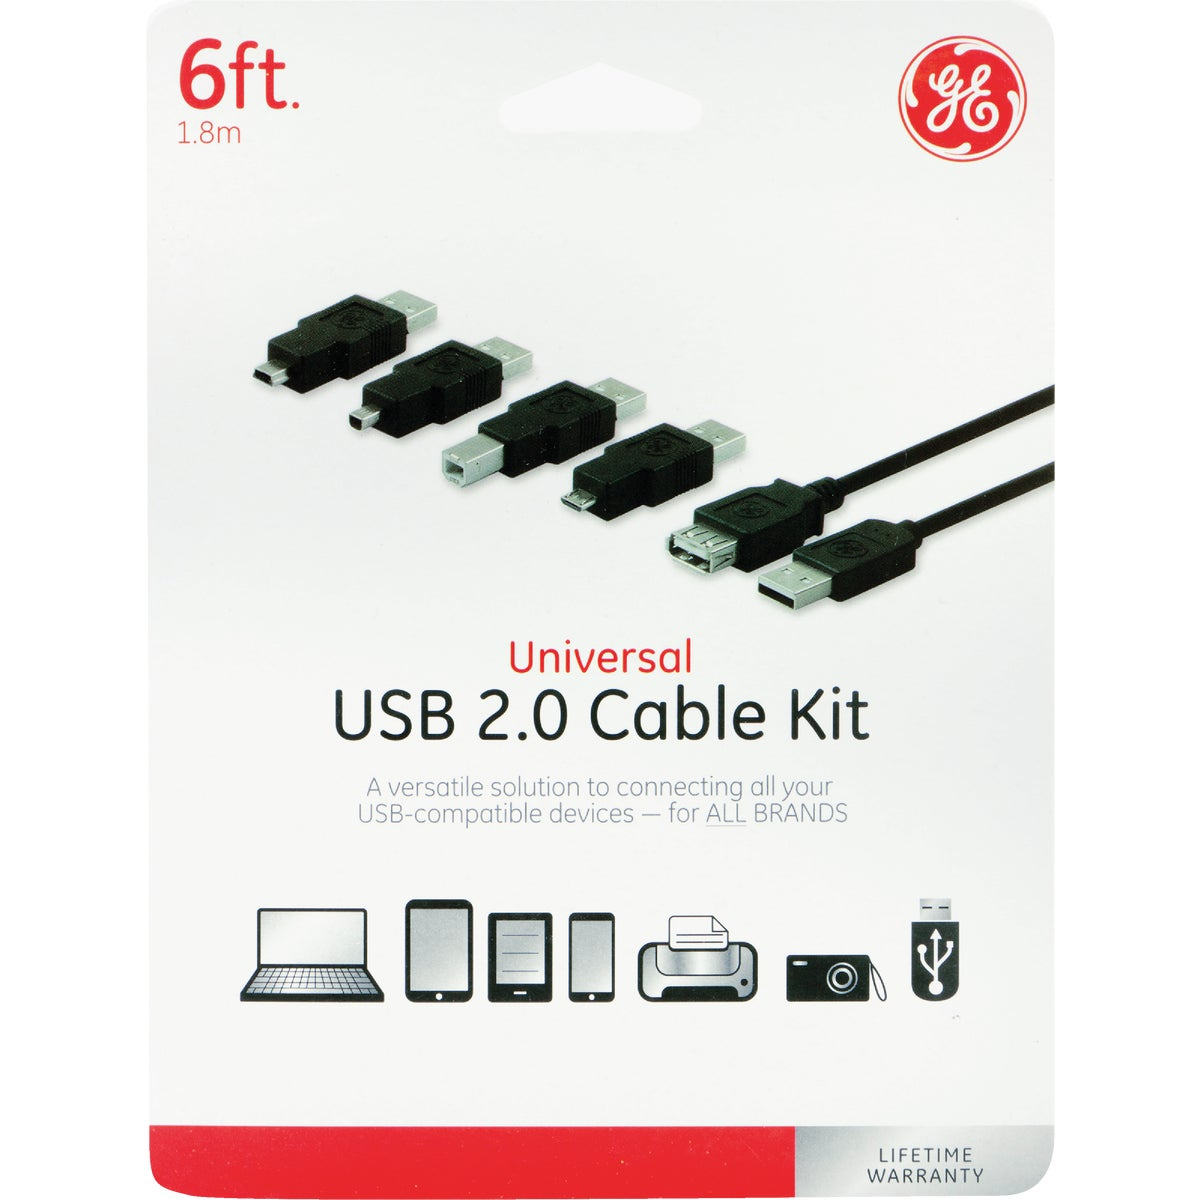 6' 6IN1 USB2.0 CABLE KIT - 98152 by Jasco Products Co